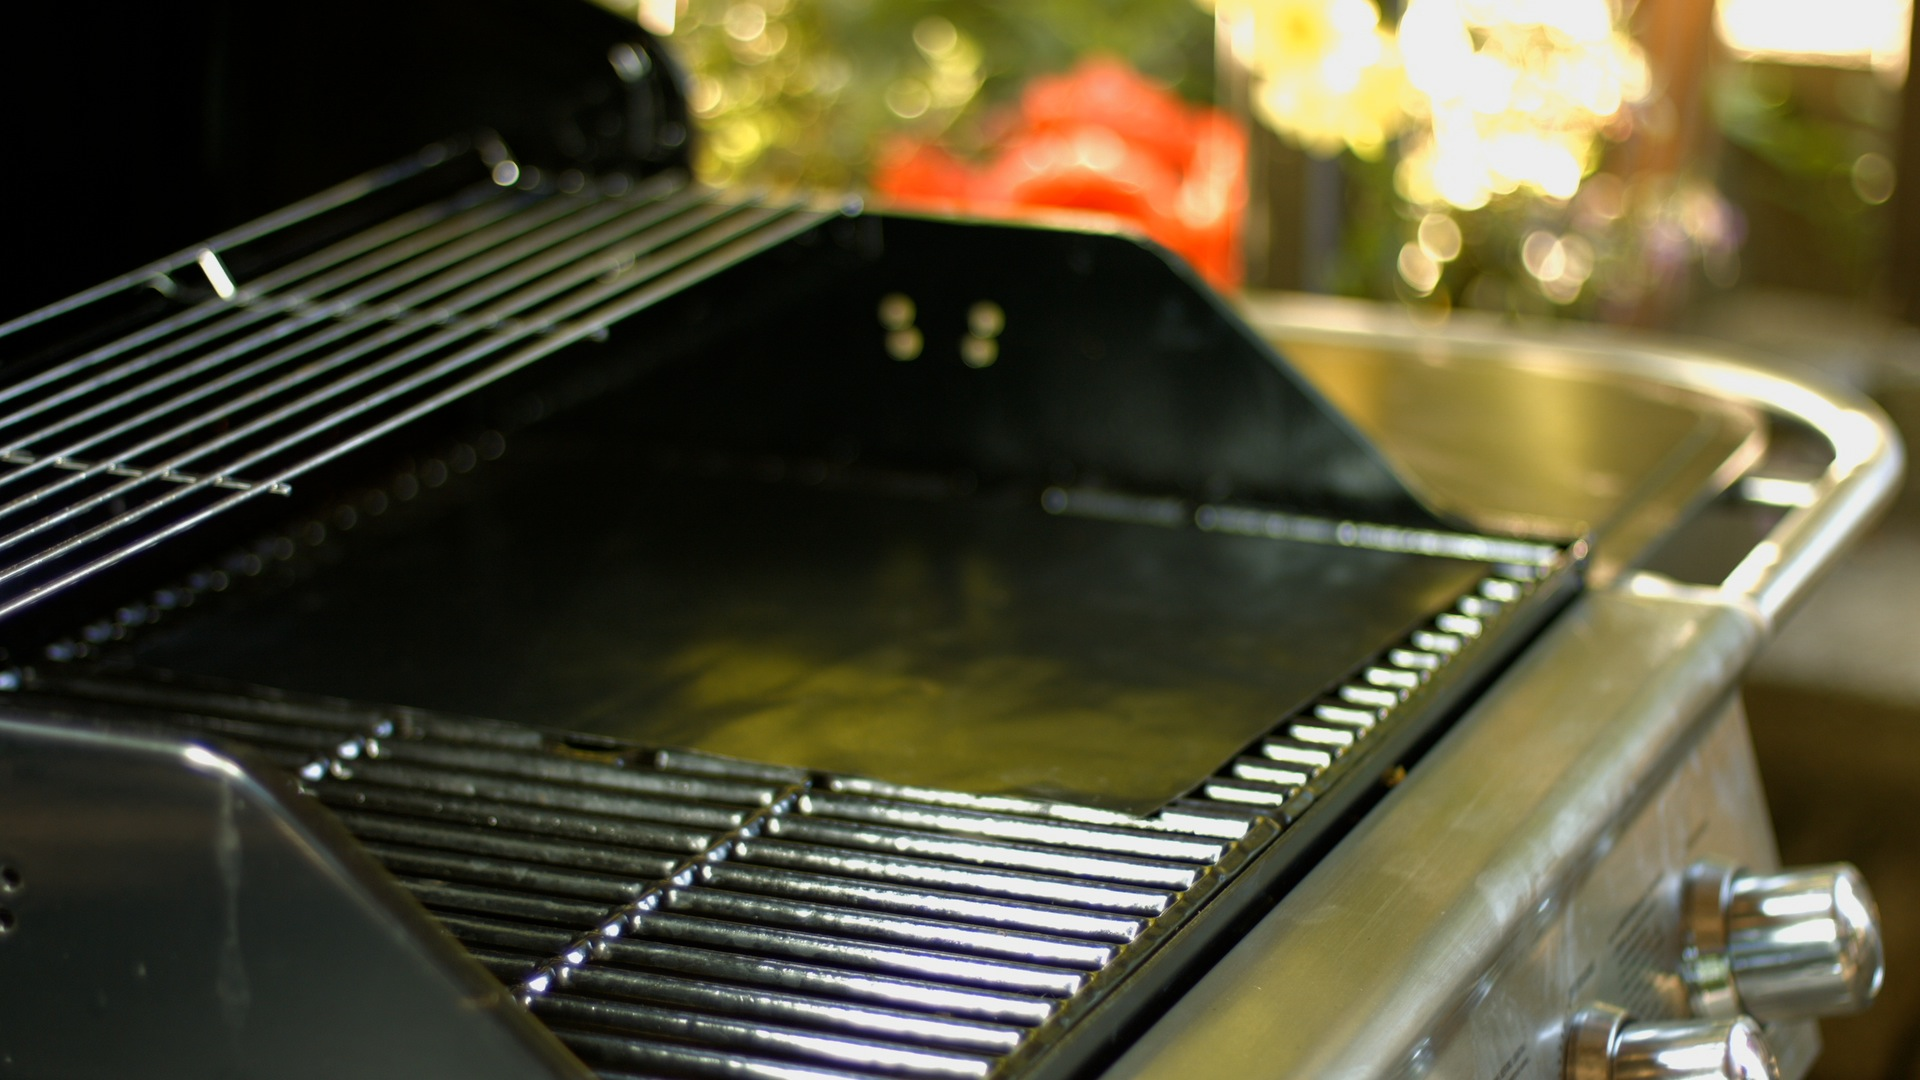 ... Barbecue Grill With A Grill Mat Part 89